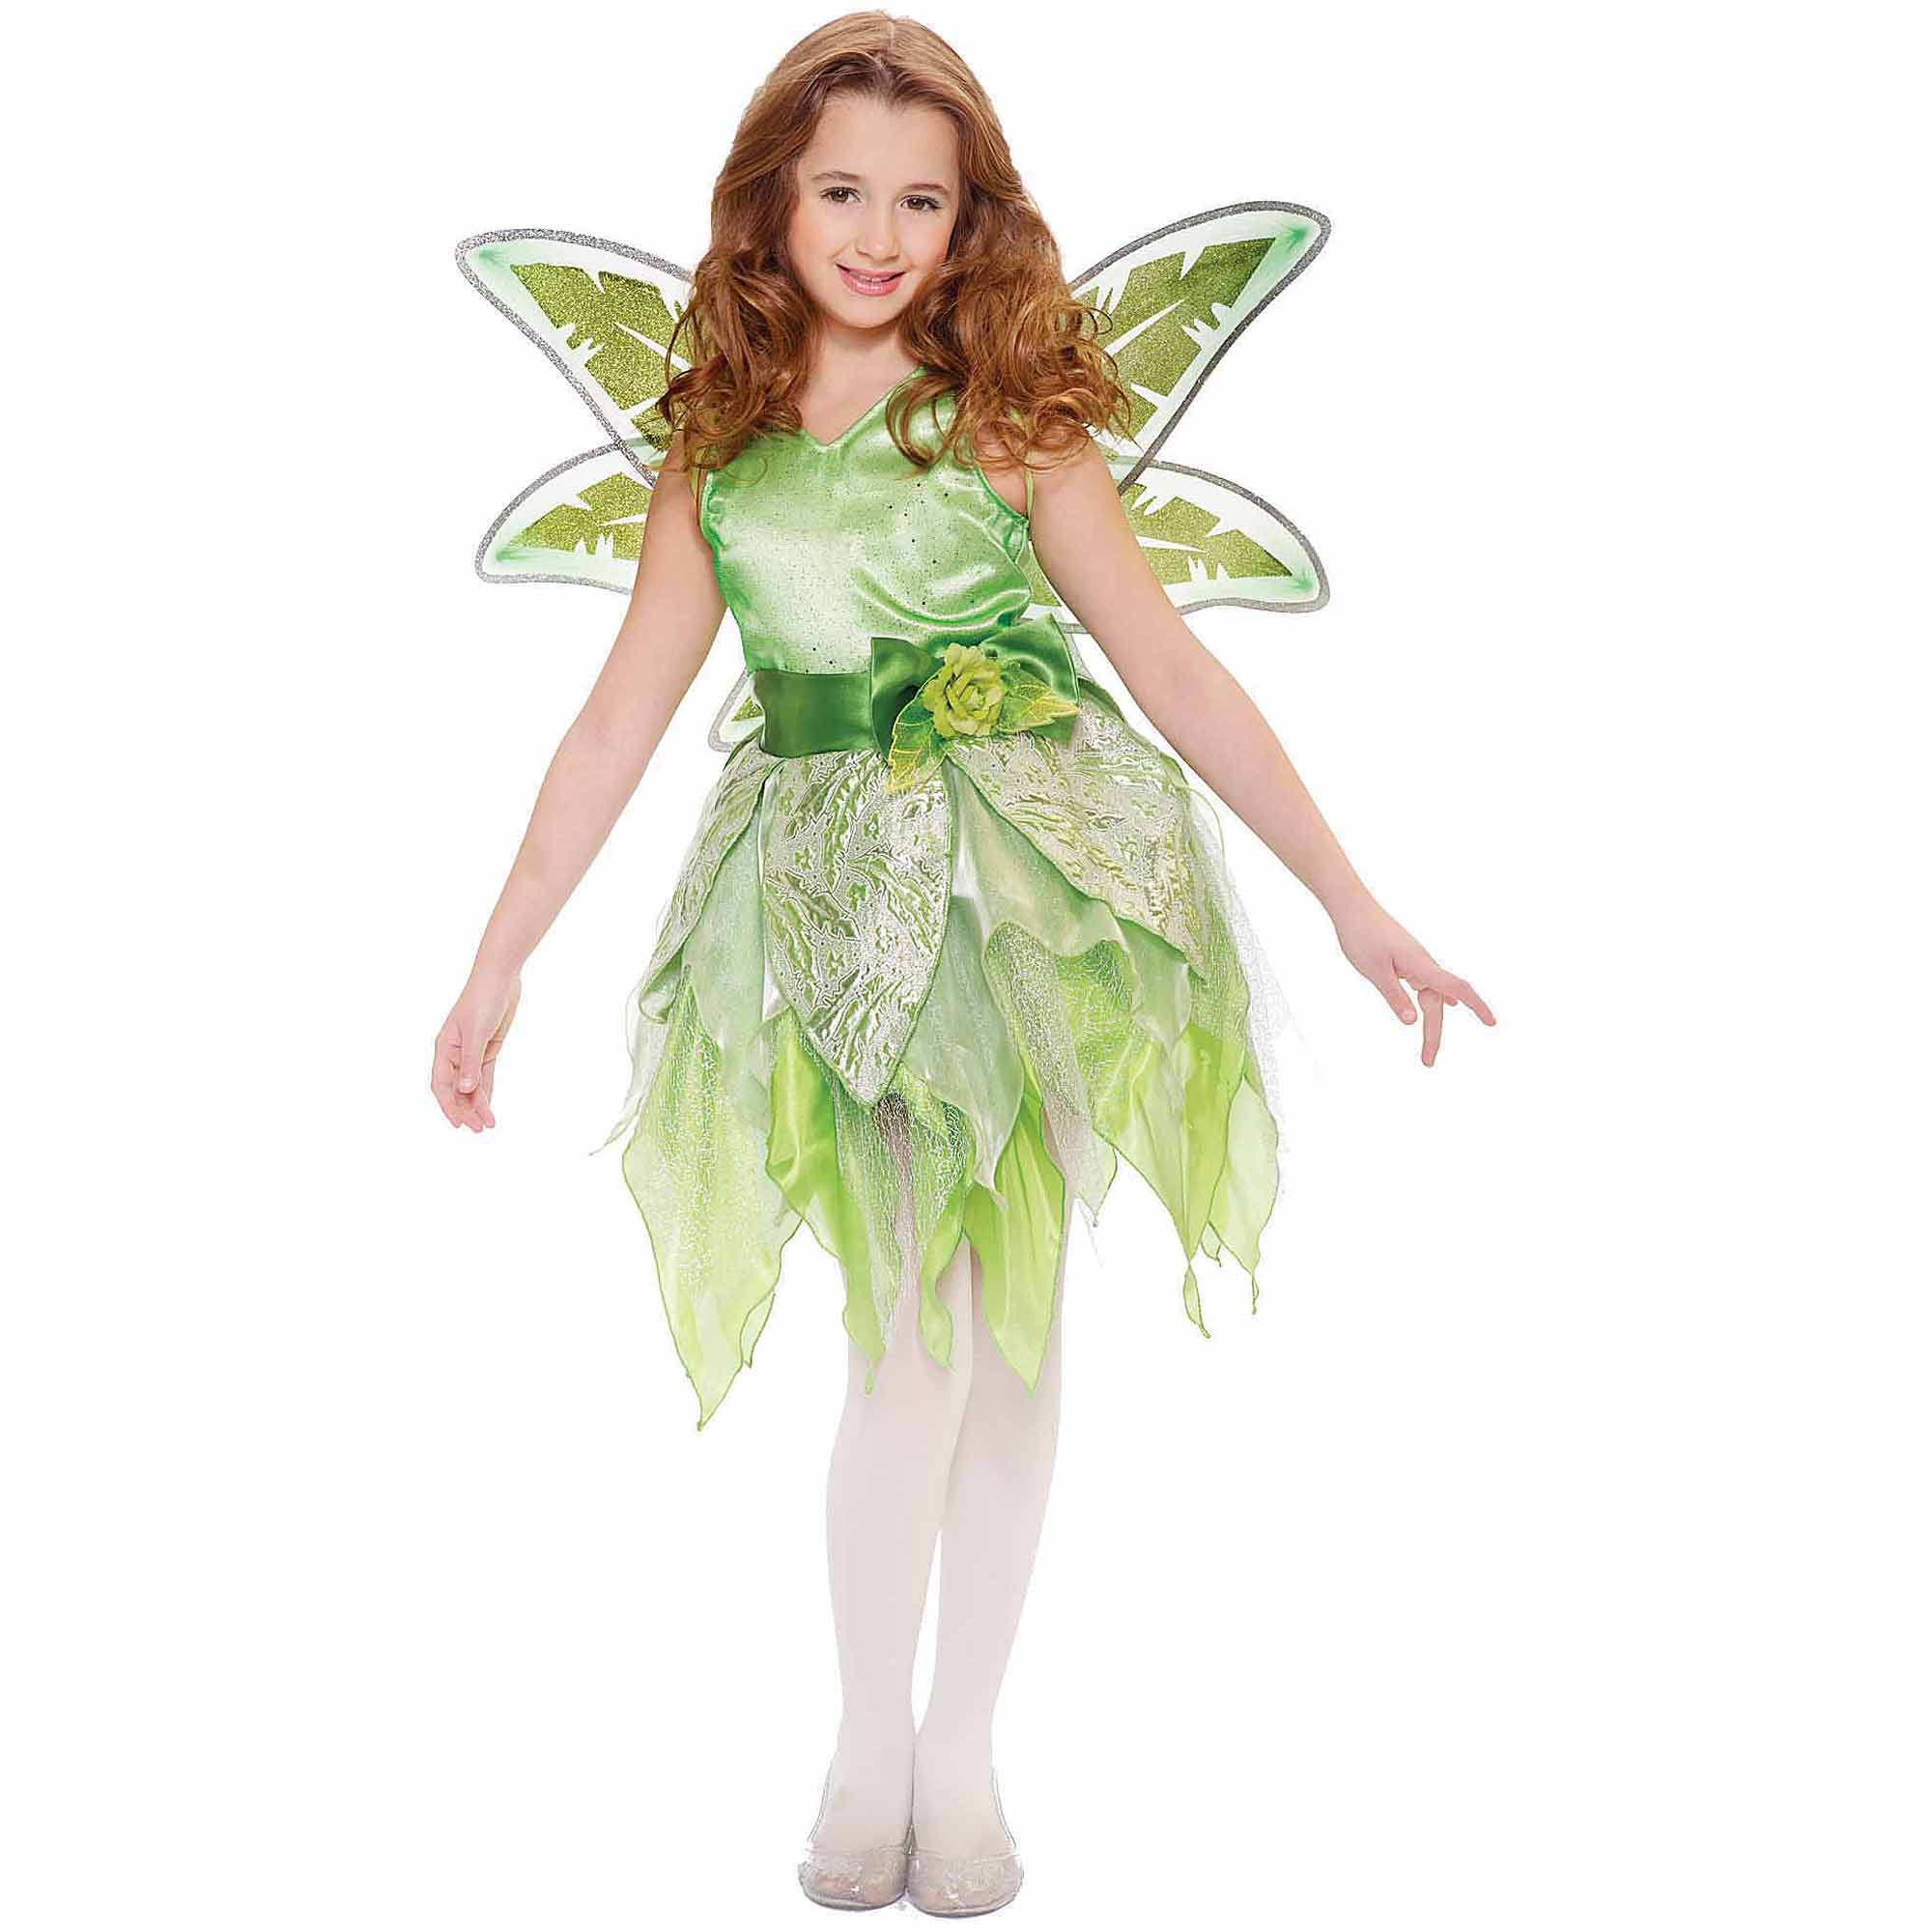 Tinker Fairy Deluxe Child Halloween Costume by Generic